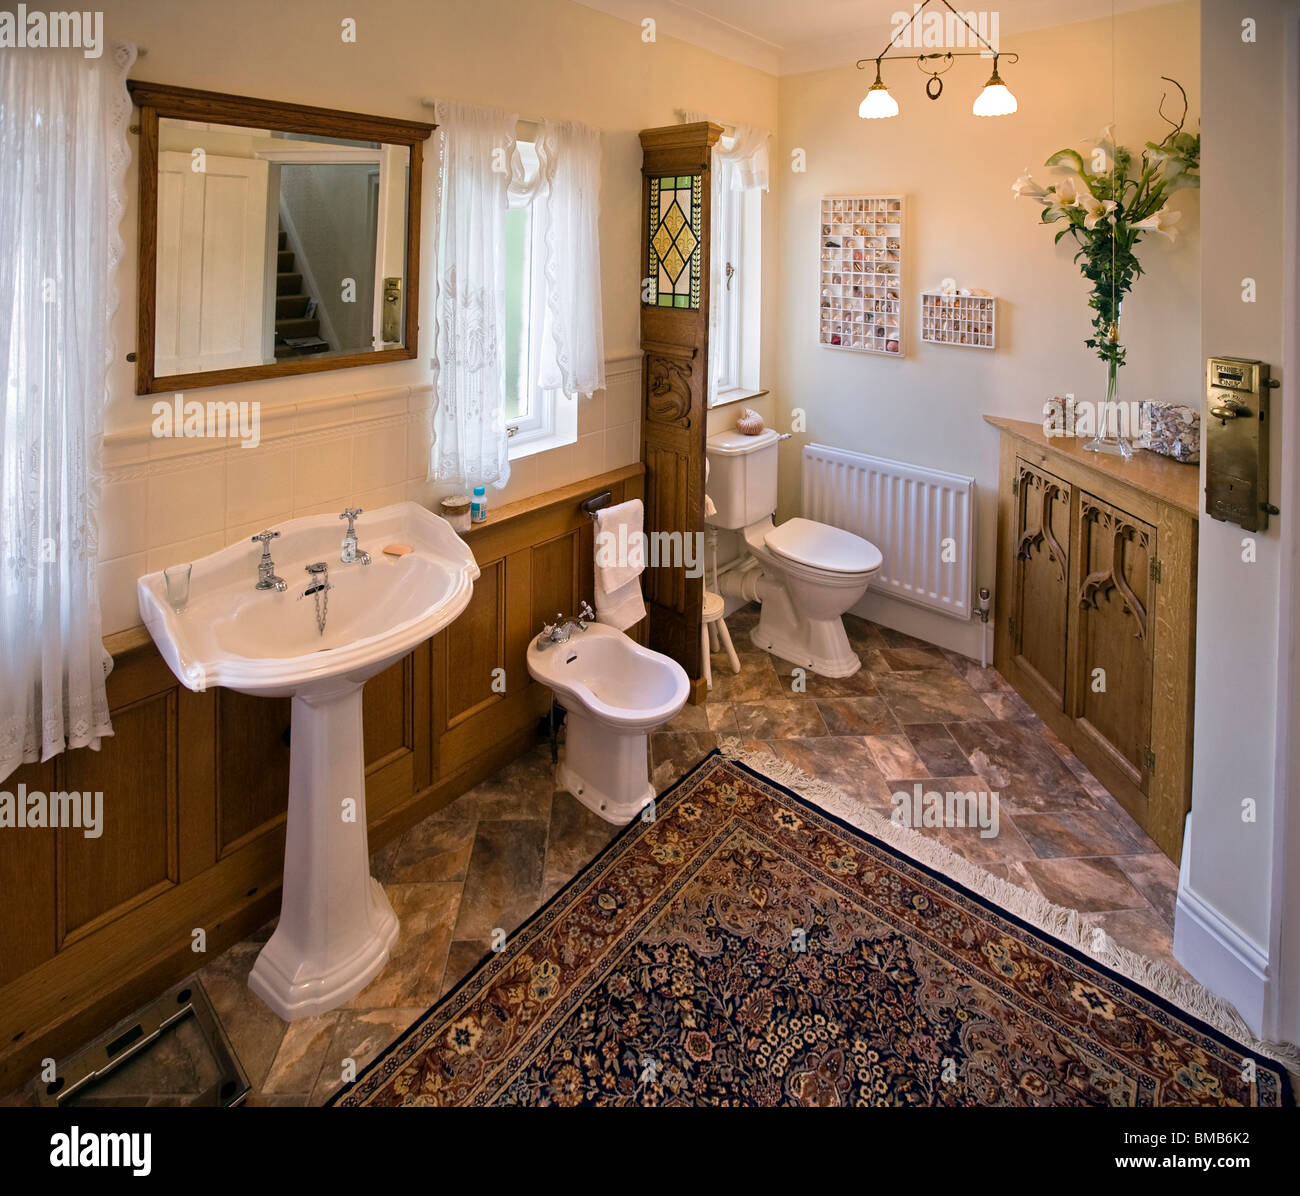 Houses Edwardian Arts And Crafts House, Oak Panelled Bathroom